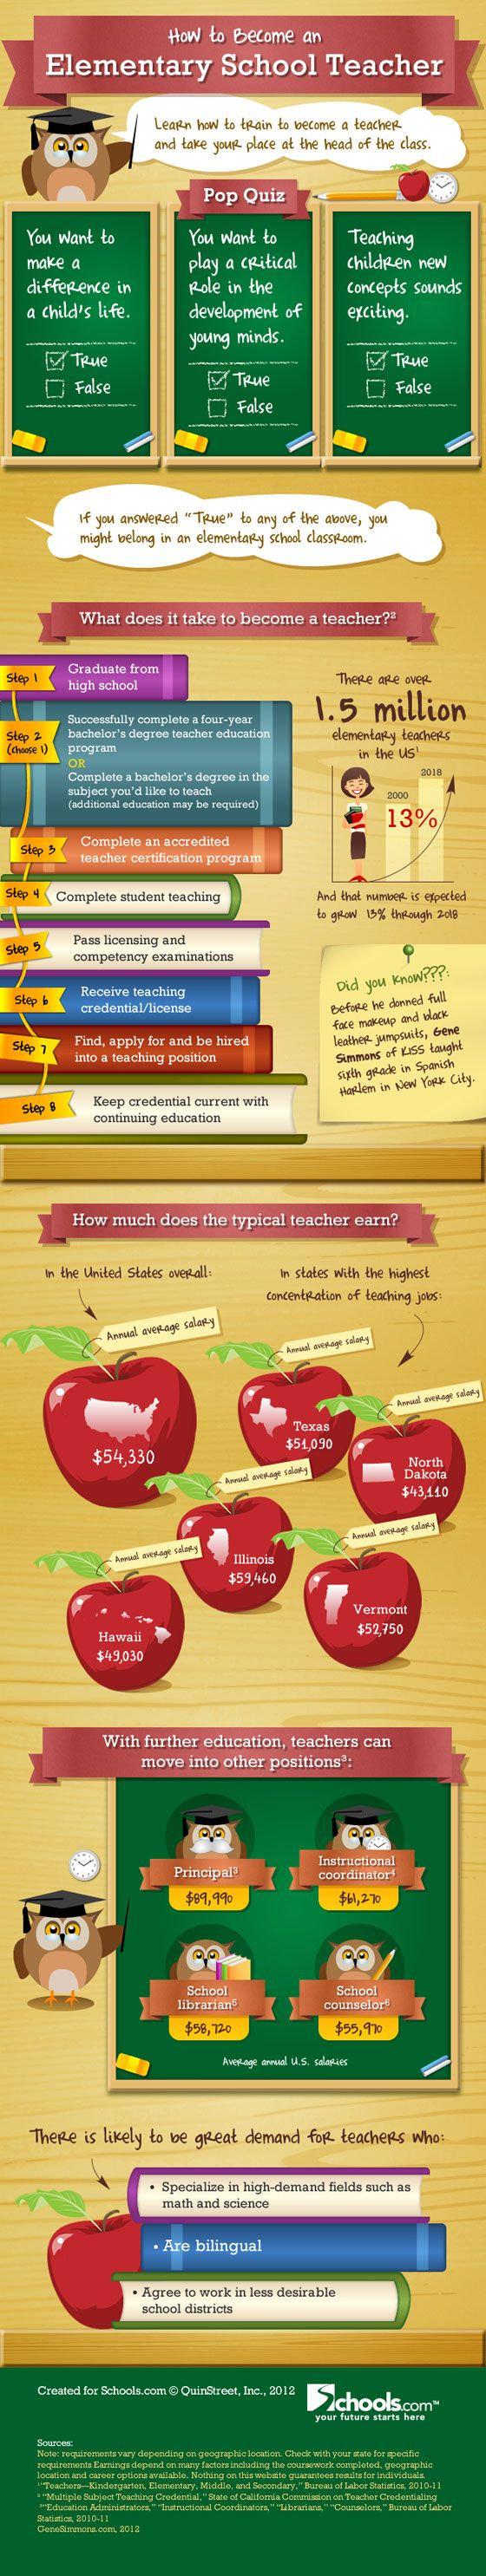 """how to become an elementary school teacher"" not sure where the VT salary stats came from..."